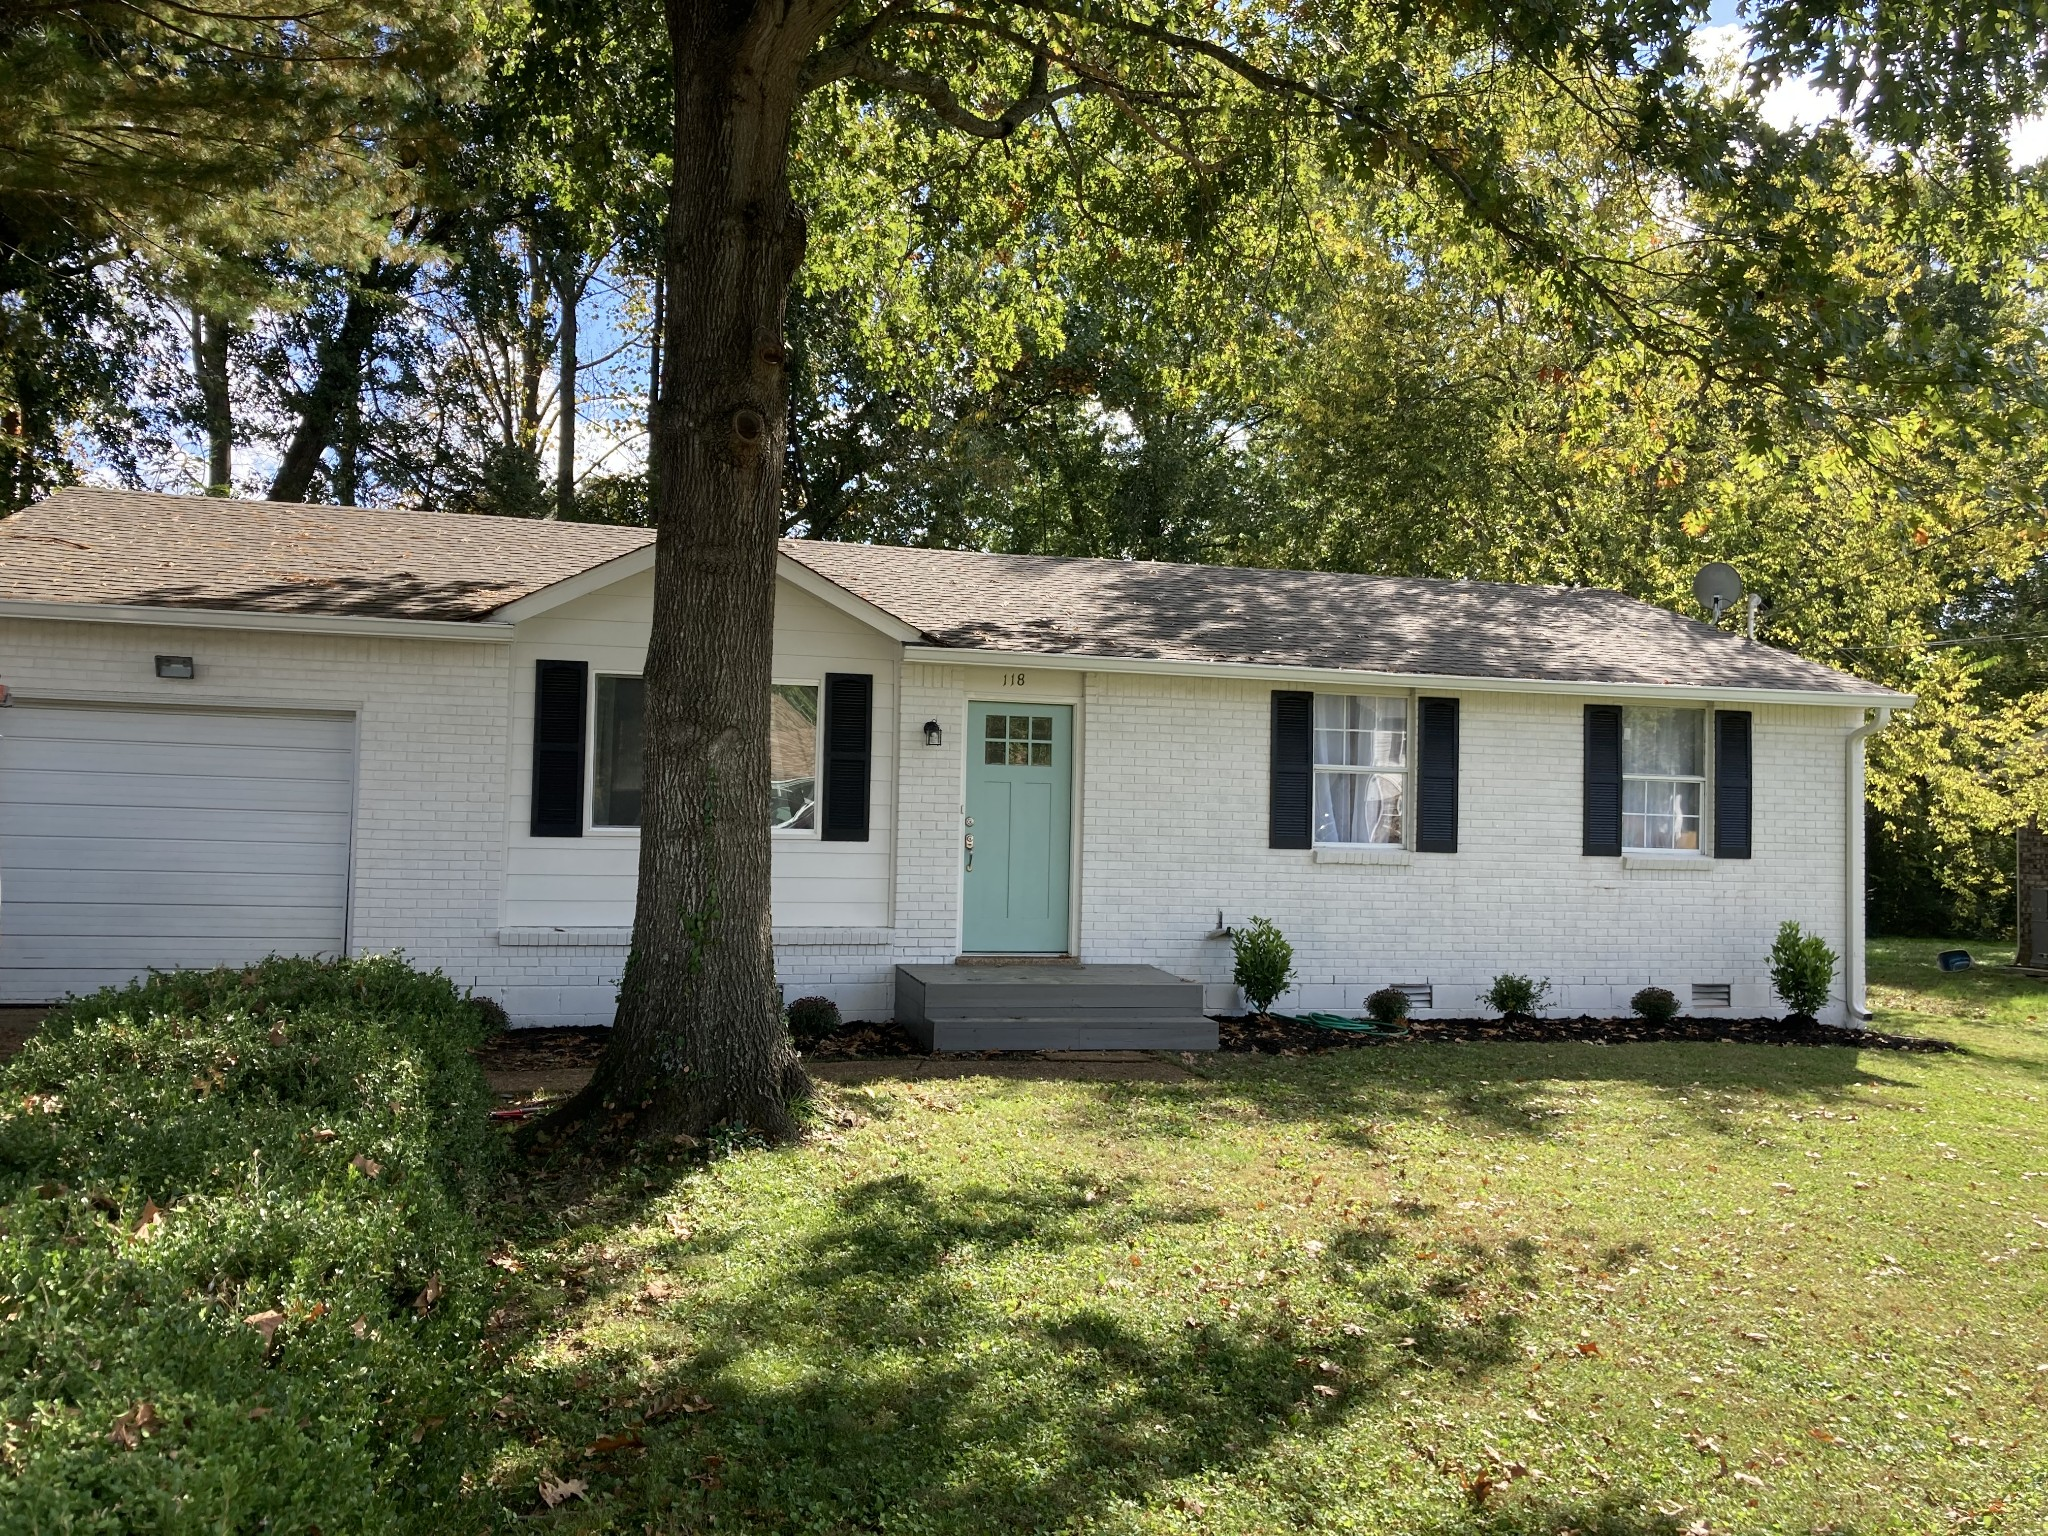 Charming ranch in Franklin for under $300k. Fully rehabbed and move in condition. New kitchen, bath, flooring, and roof. Also, 1 car garage. Great location.